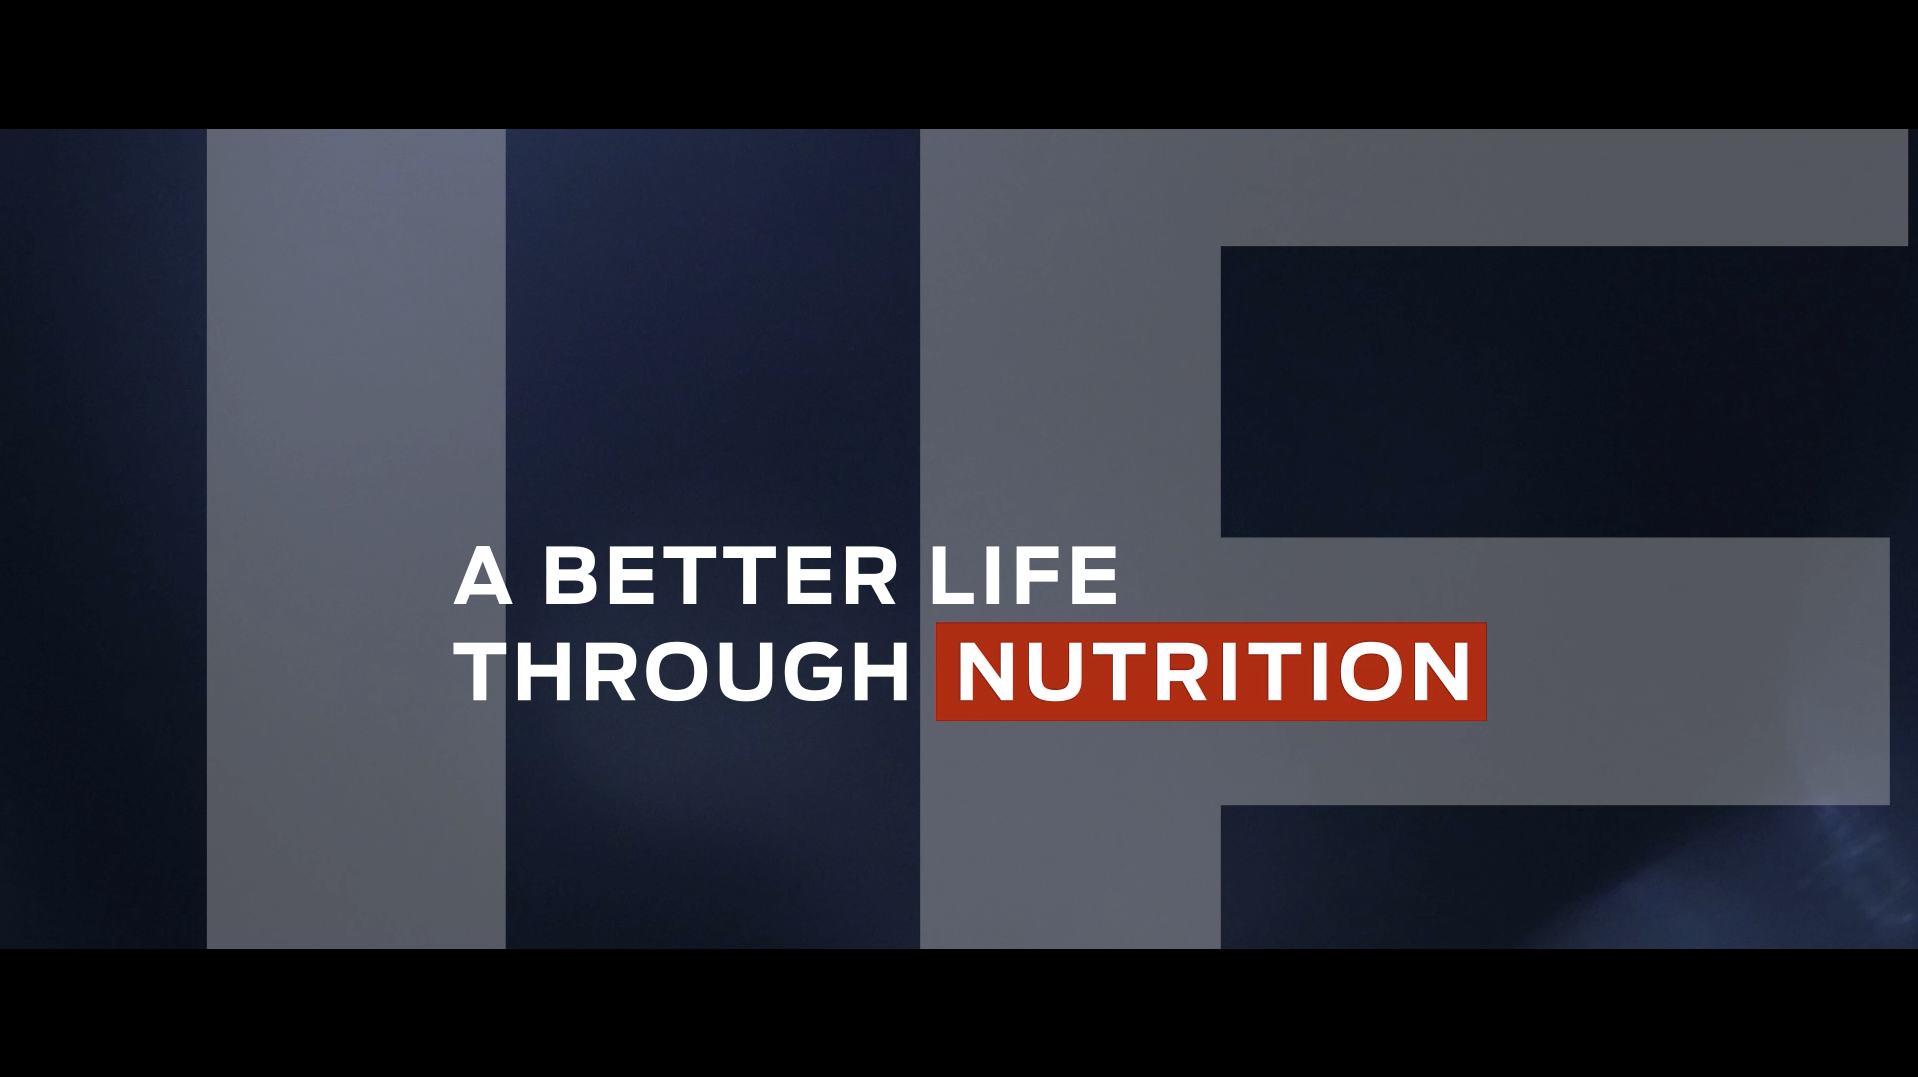 Introducing The Purina Institute